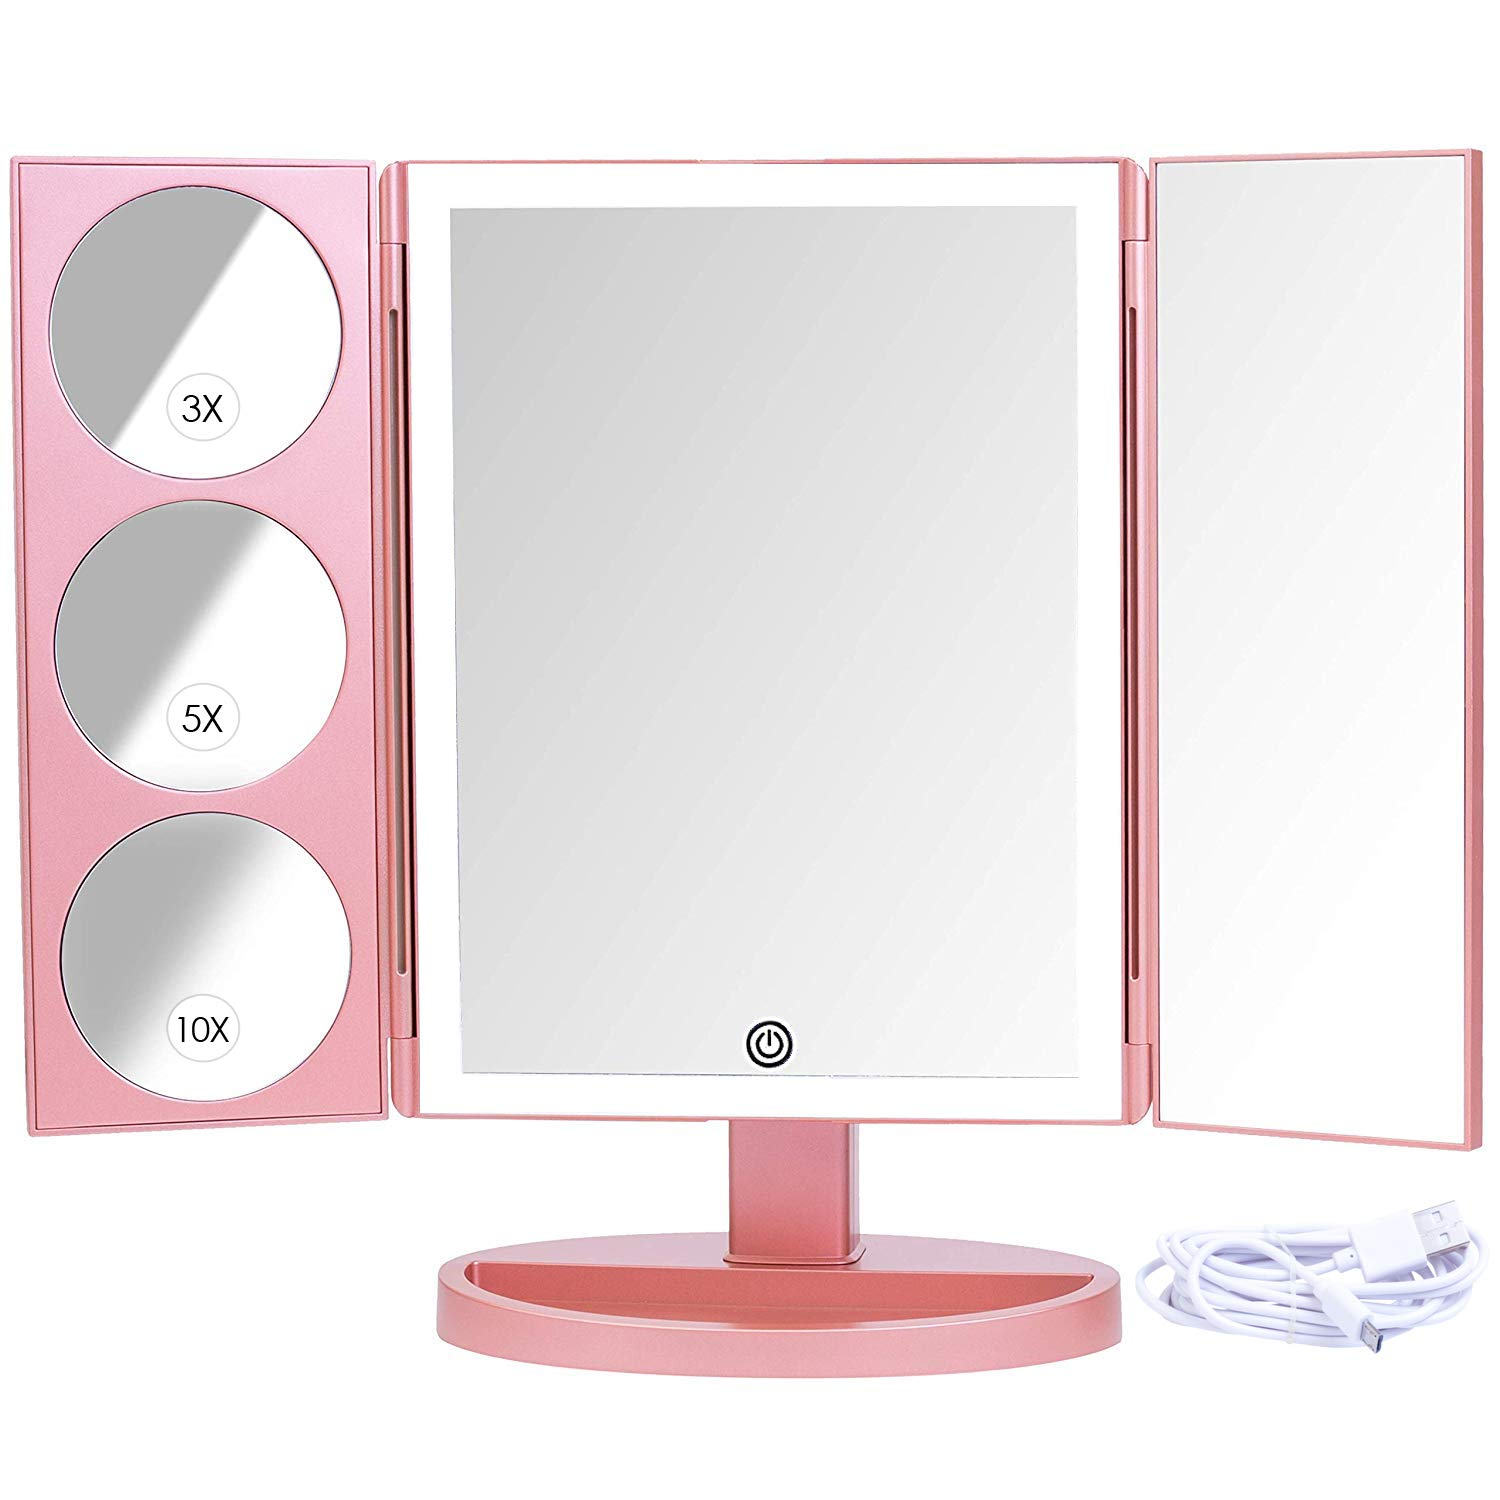 Mirrorvana XLarge Vanity Mirror with Lights | Extravagant Trifold LED Lighted Makeup Mirror with 3X, 5X, 10X Magnification & Bonus USB Cable (2018 XLarge Rose Gold Model) by Mirrorvana